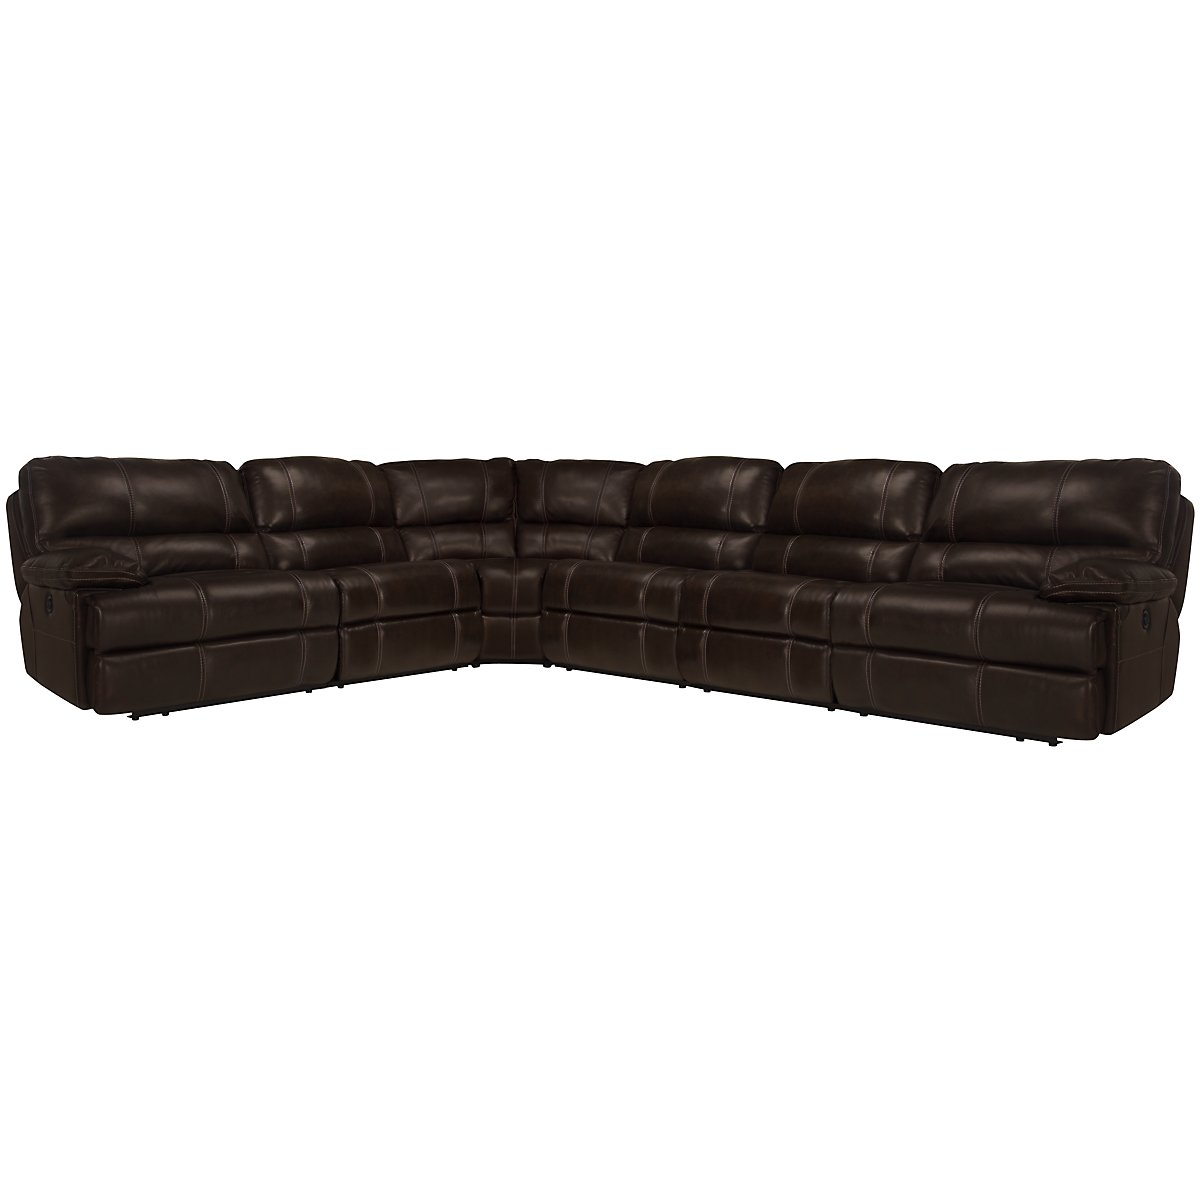 Alton2 Dark Brown Leather & Vinyl Large Two-Arm Manually Reclining Sectional